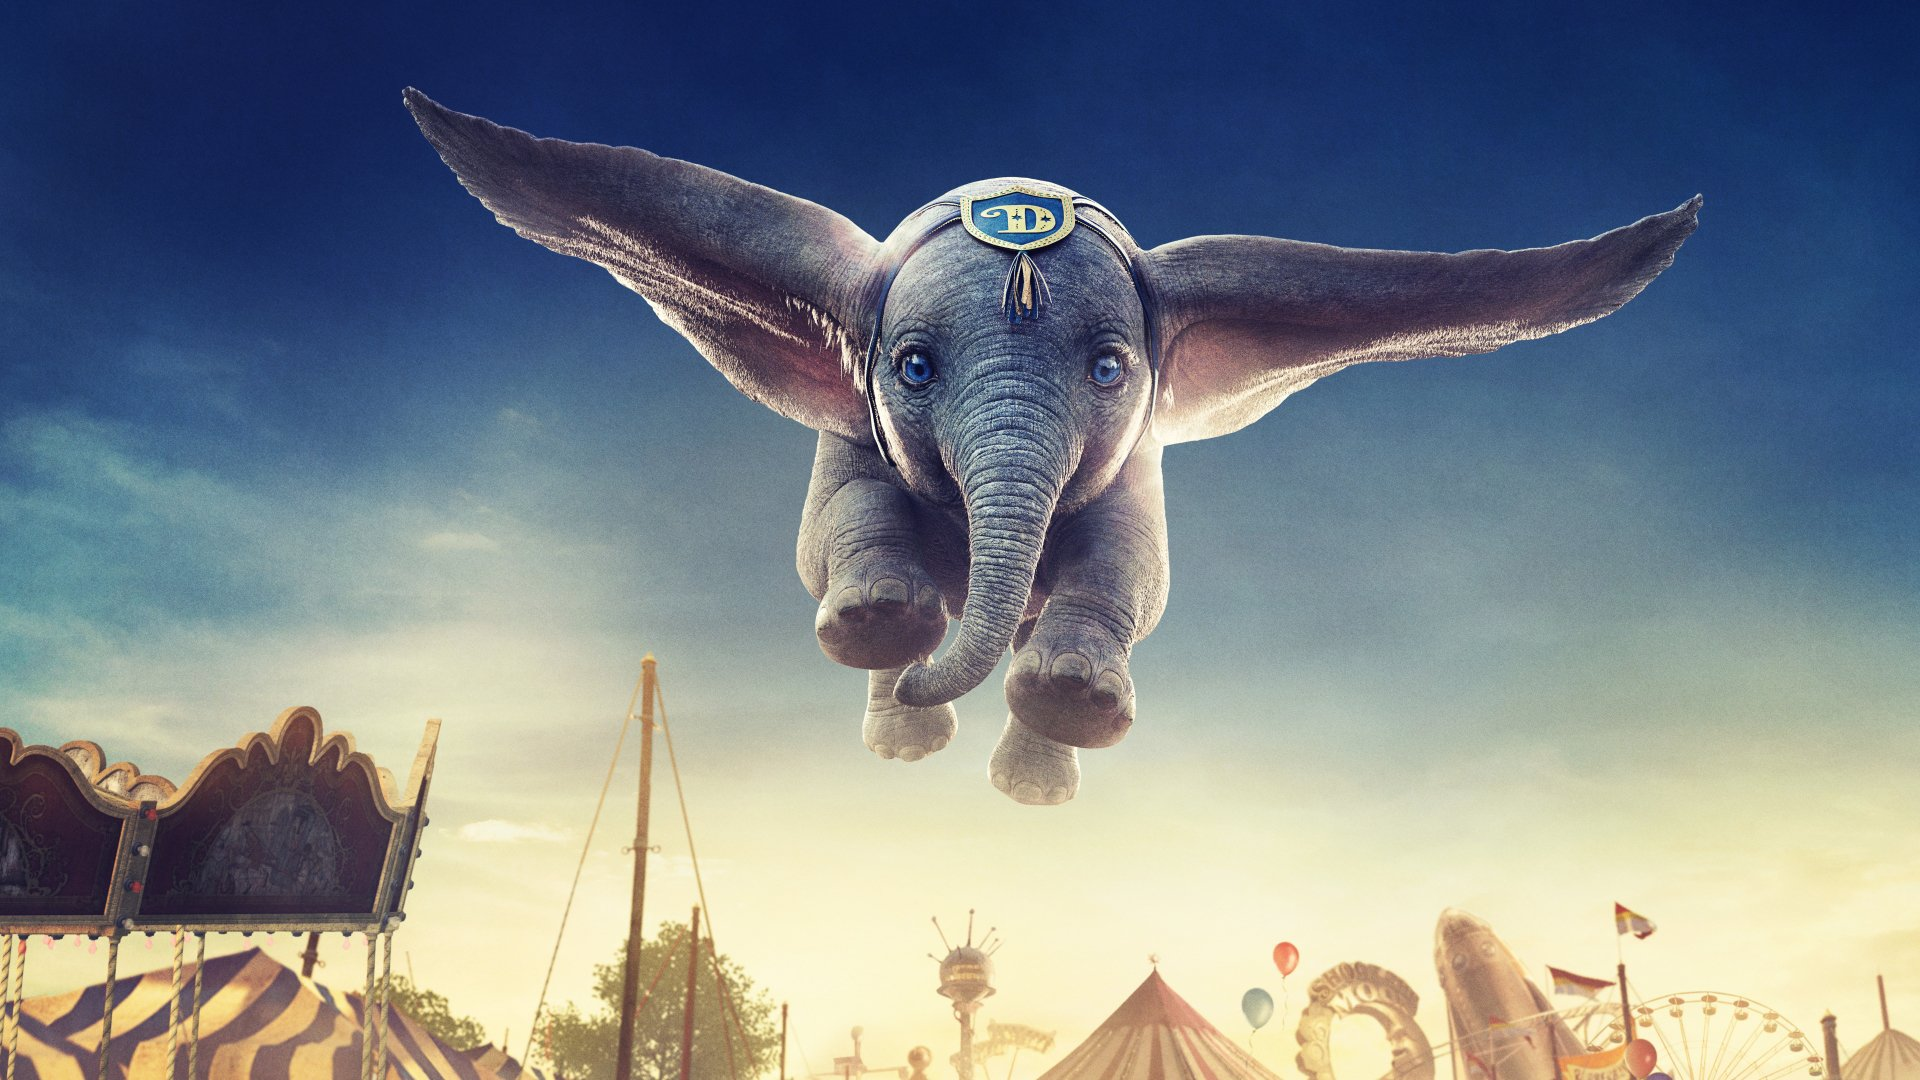 2 Dumbo 2019 Hd Wallpapers Background Images Wallpaper Abyss